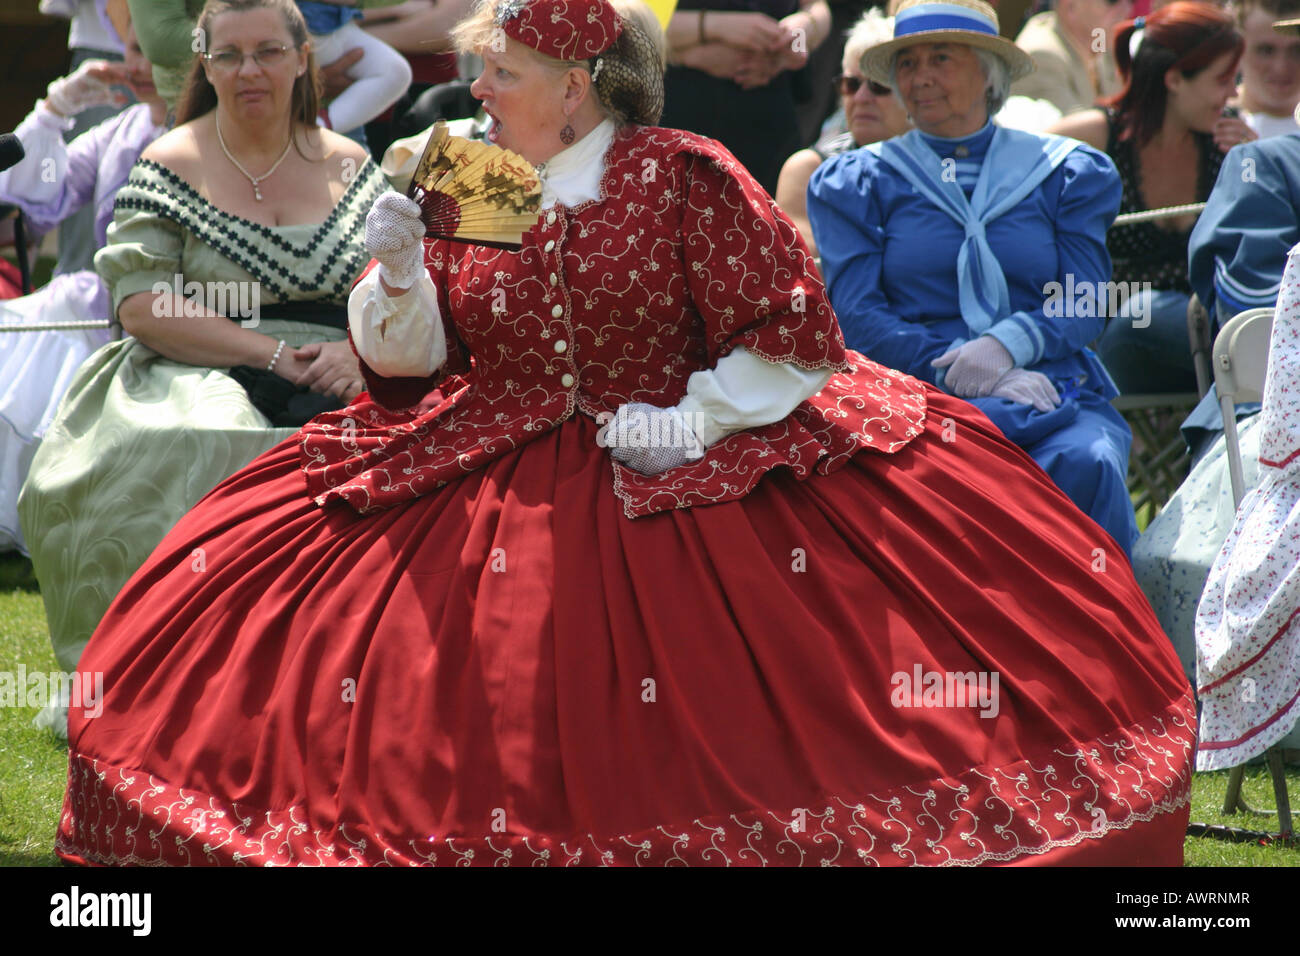 victorian lady street theatre actress large red dress   dickens festival - Stock Image